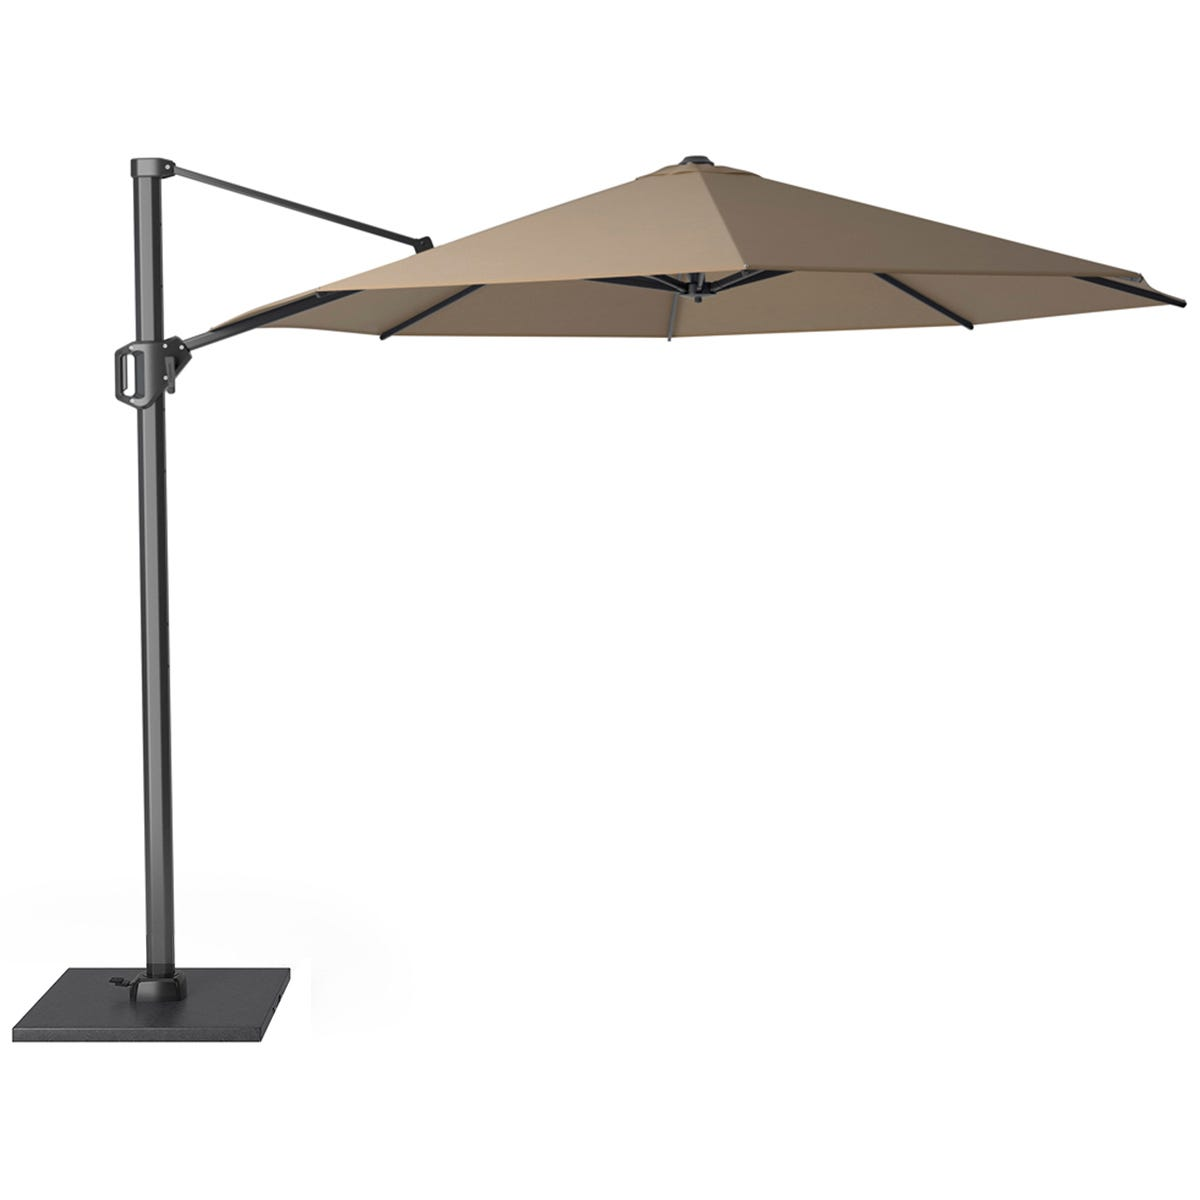 Pacific Lifestyle Challenger T1 3.5m Round Taupe Parasol with Burnt Black Granite 90KG Parasol Base